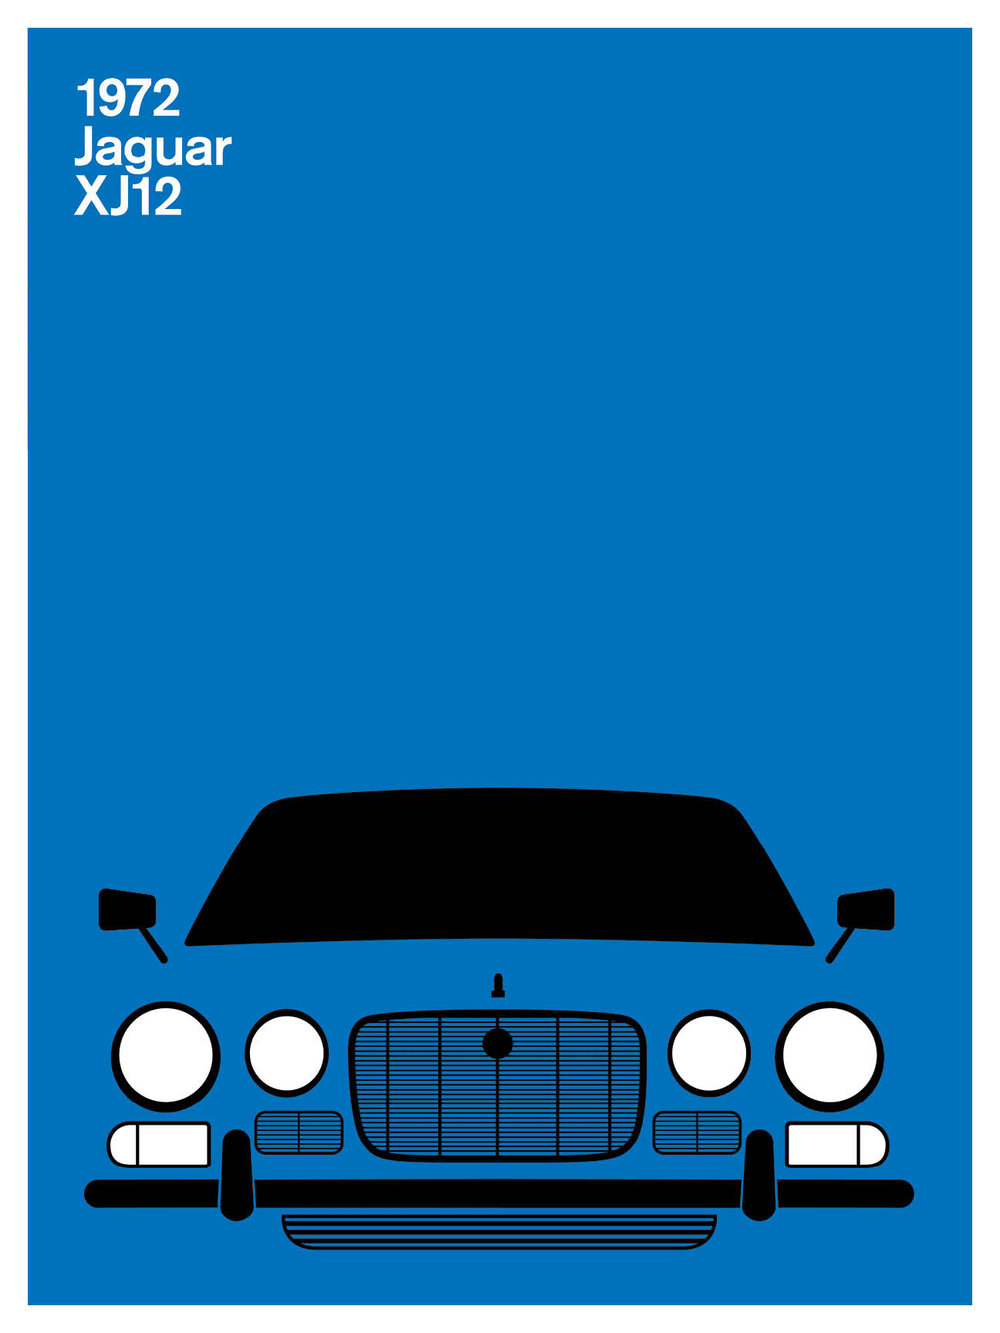 cars NL 18x24 web ex Wall 112.jpg